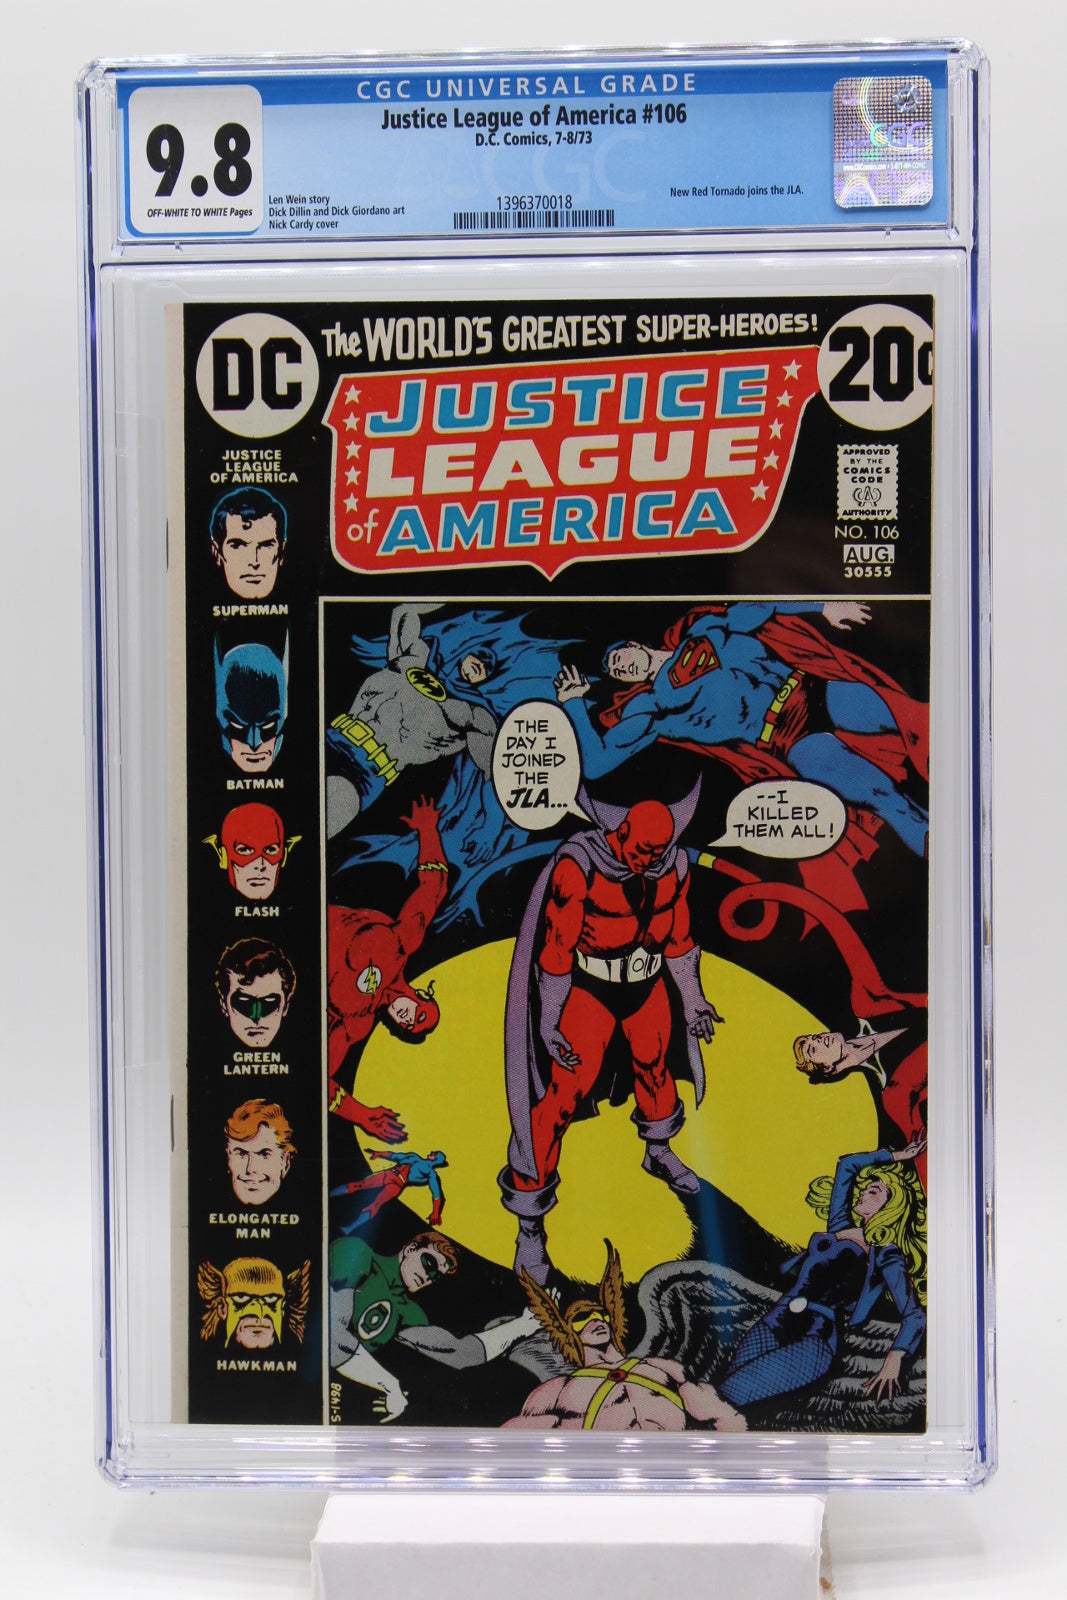 Justice League of America #106 - CGC 9.8 - New Red Tornado joins JLA